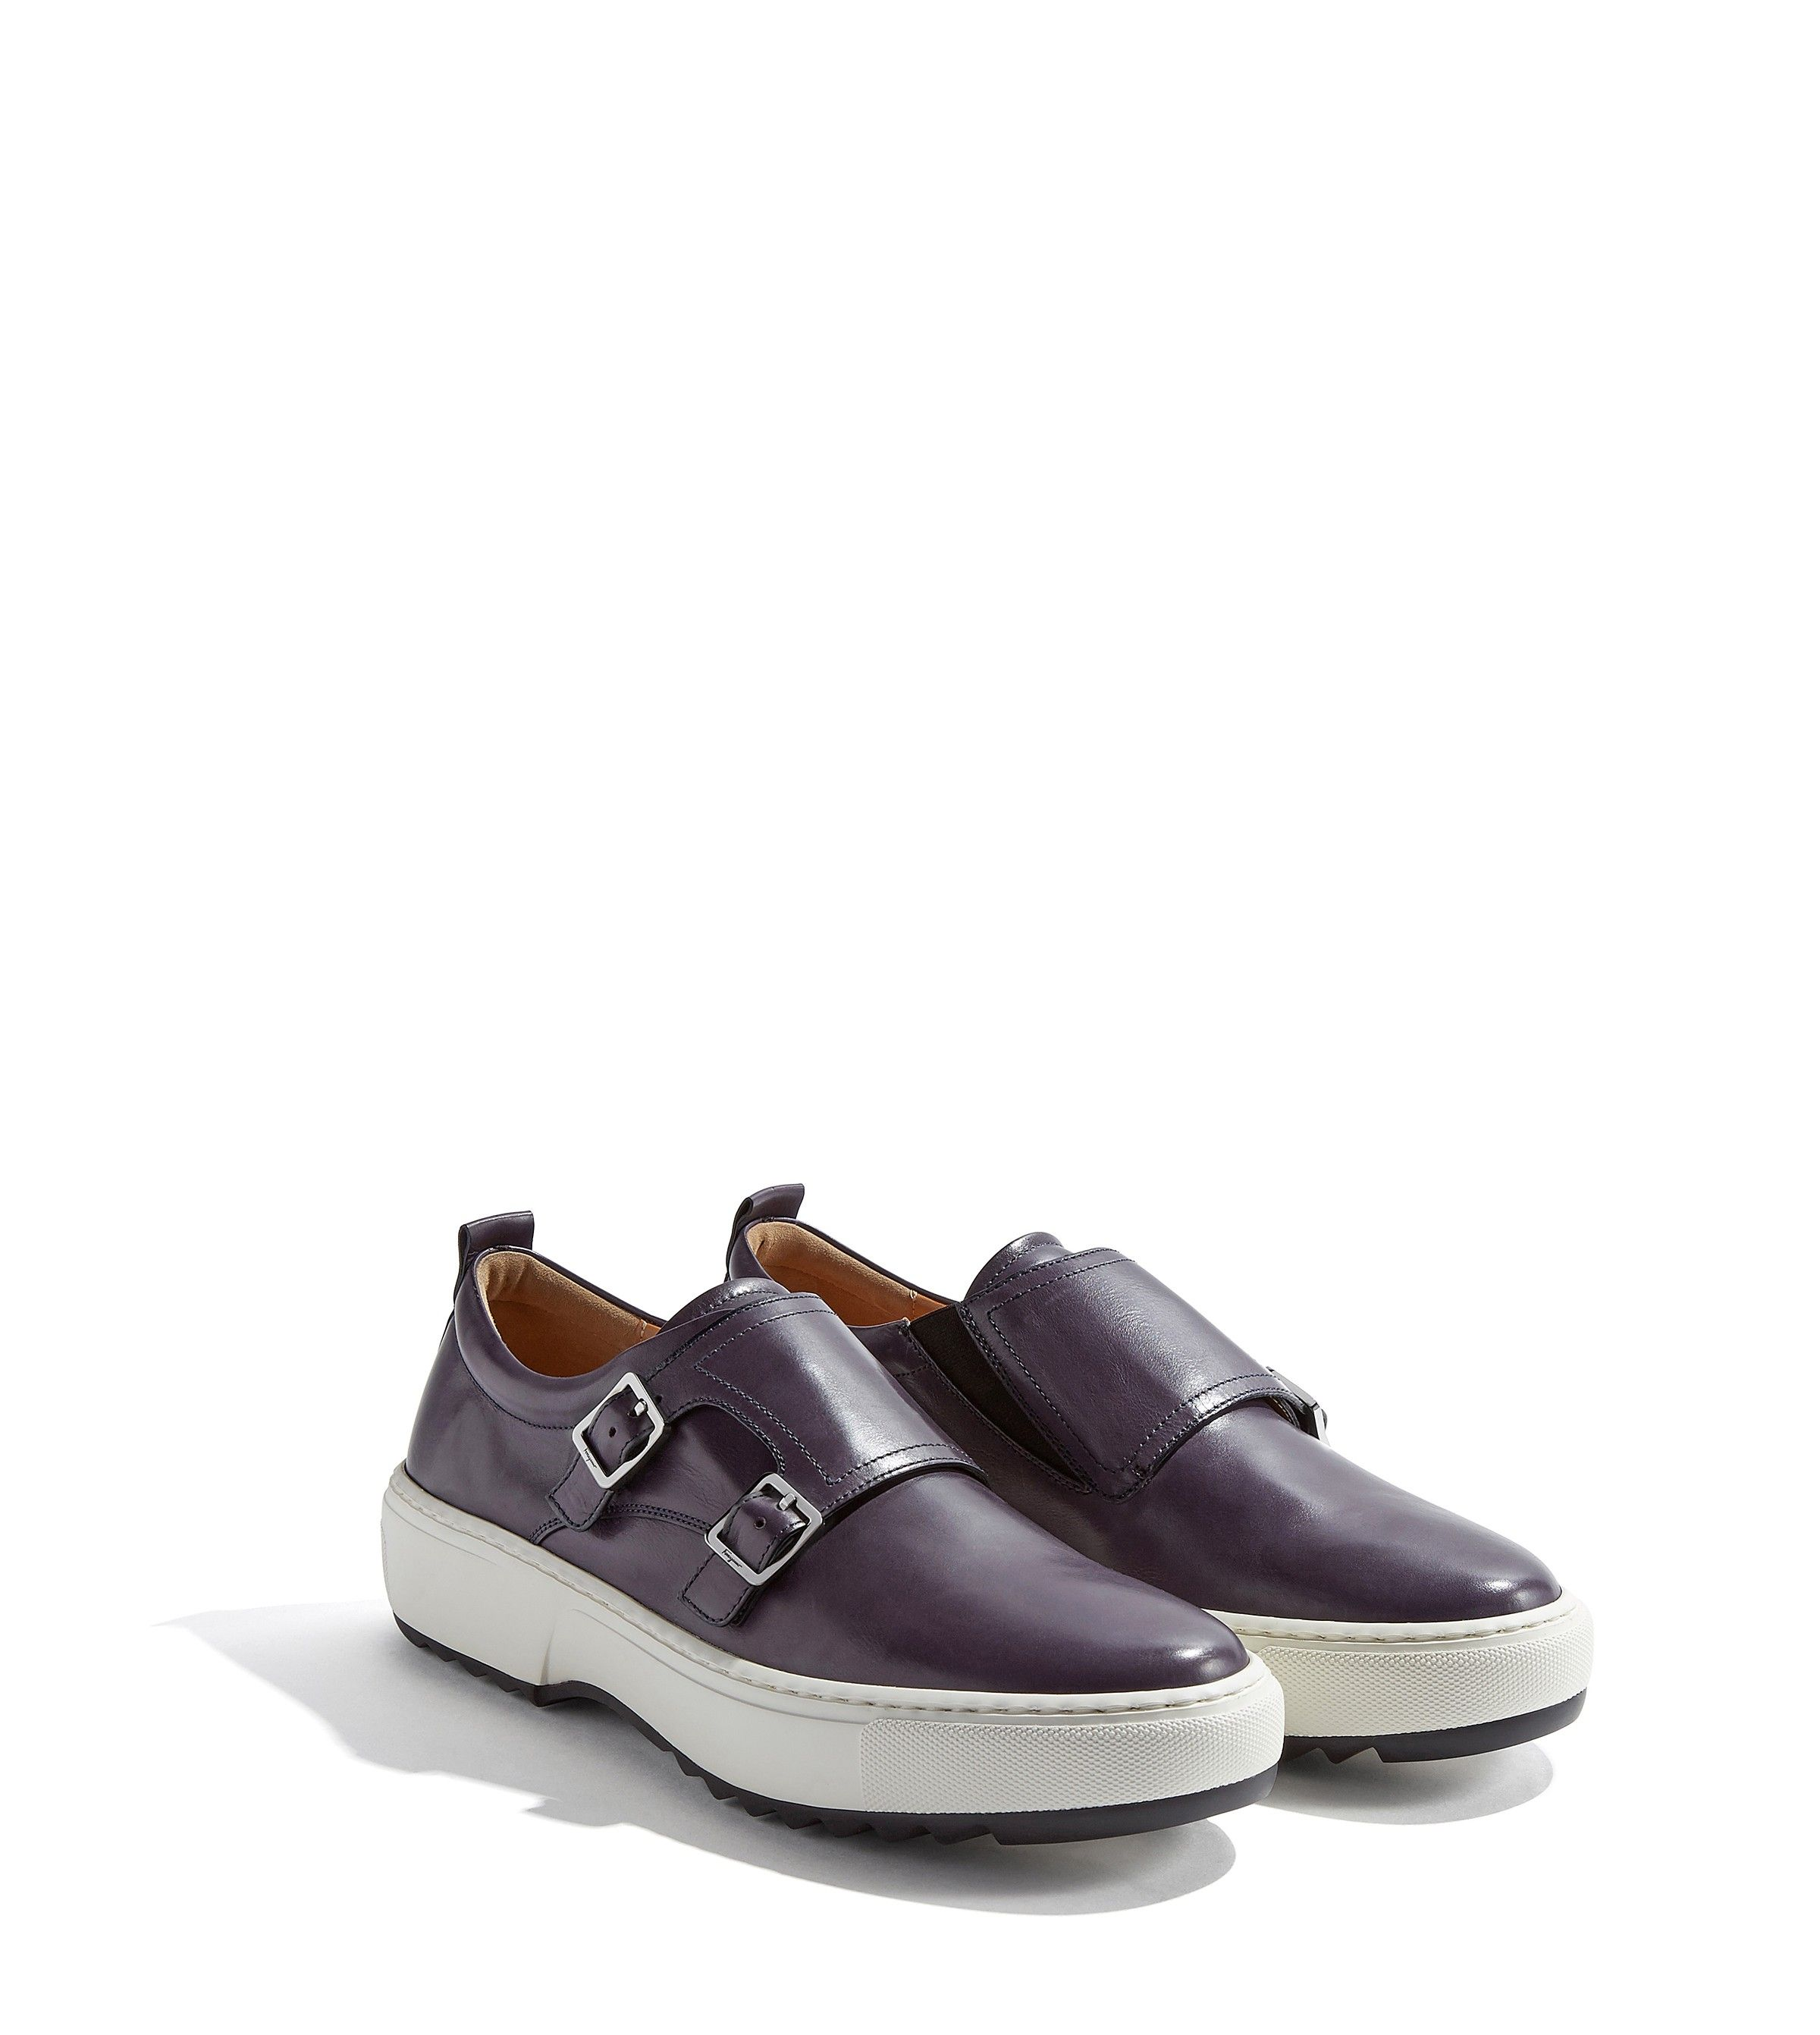 Salvatore Ferragamo monk strap sneakers outlet authentic many kinds of uQdbwmaHt